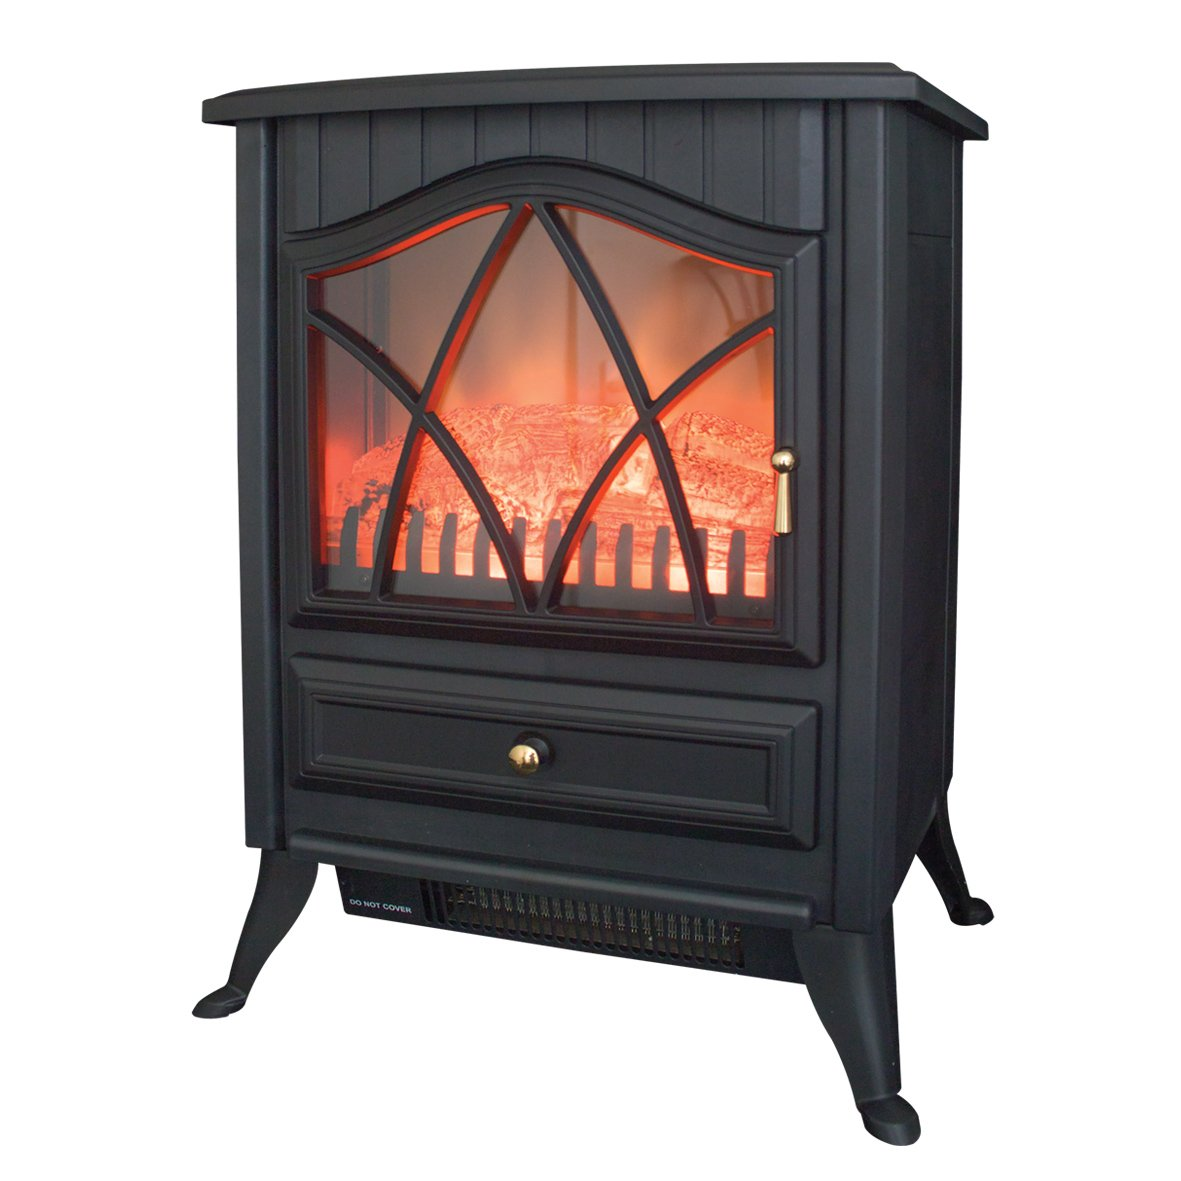 benross cast iron effect fire electric stove watt white amazoncouk kitchen u home with castorama. Black Bedroom Furniture Sets. Home Design Ideas